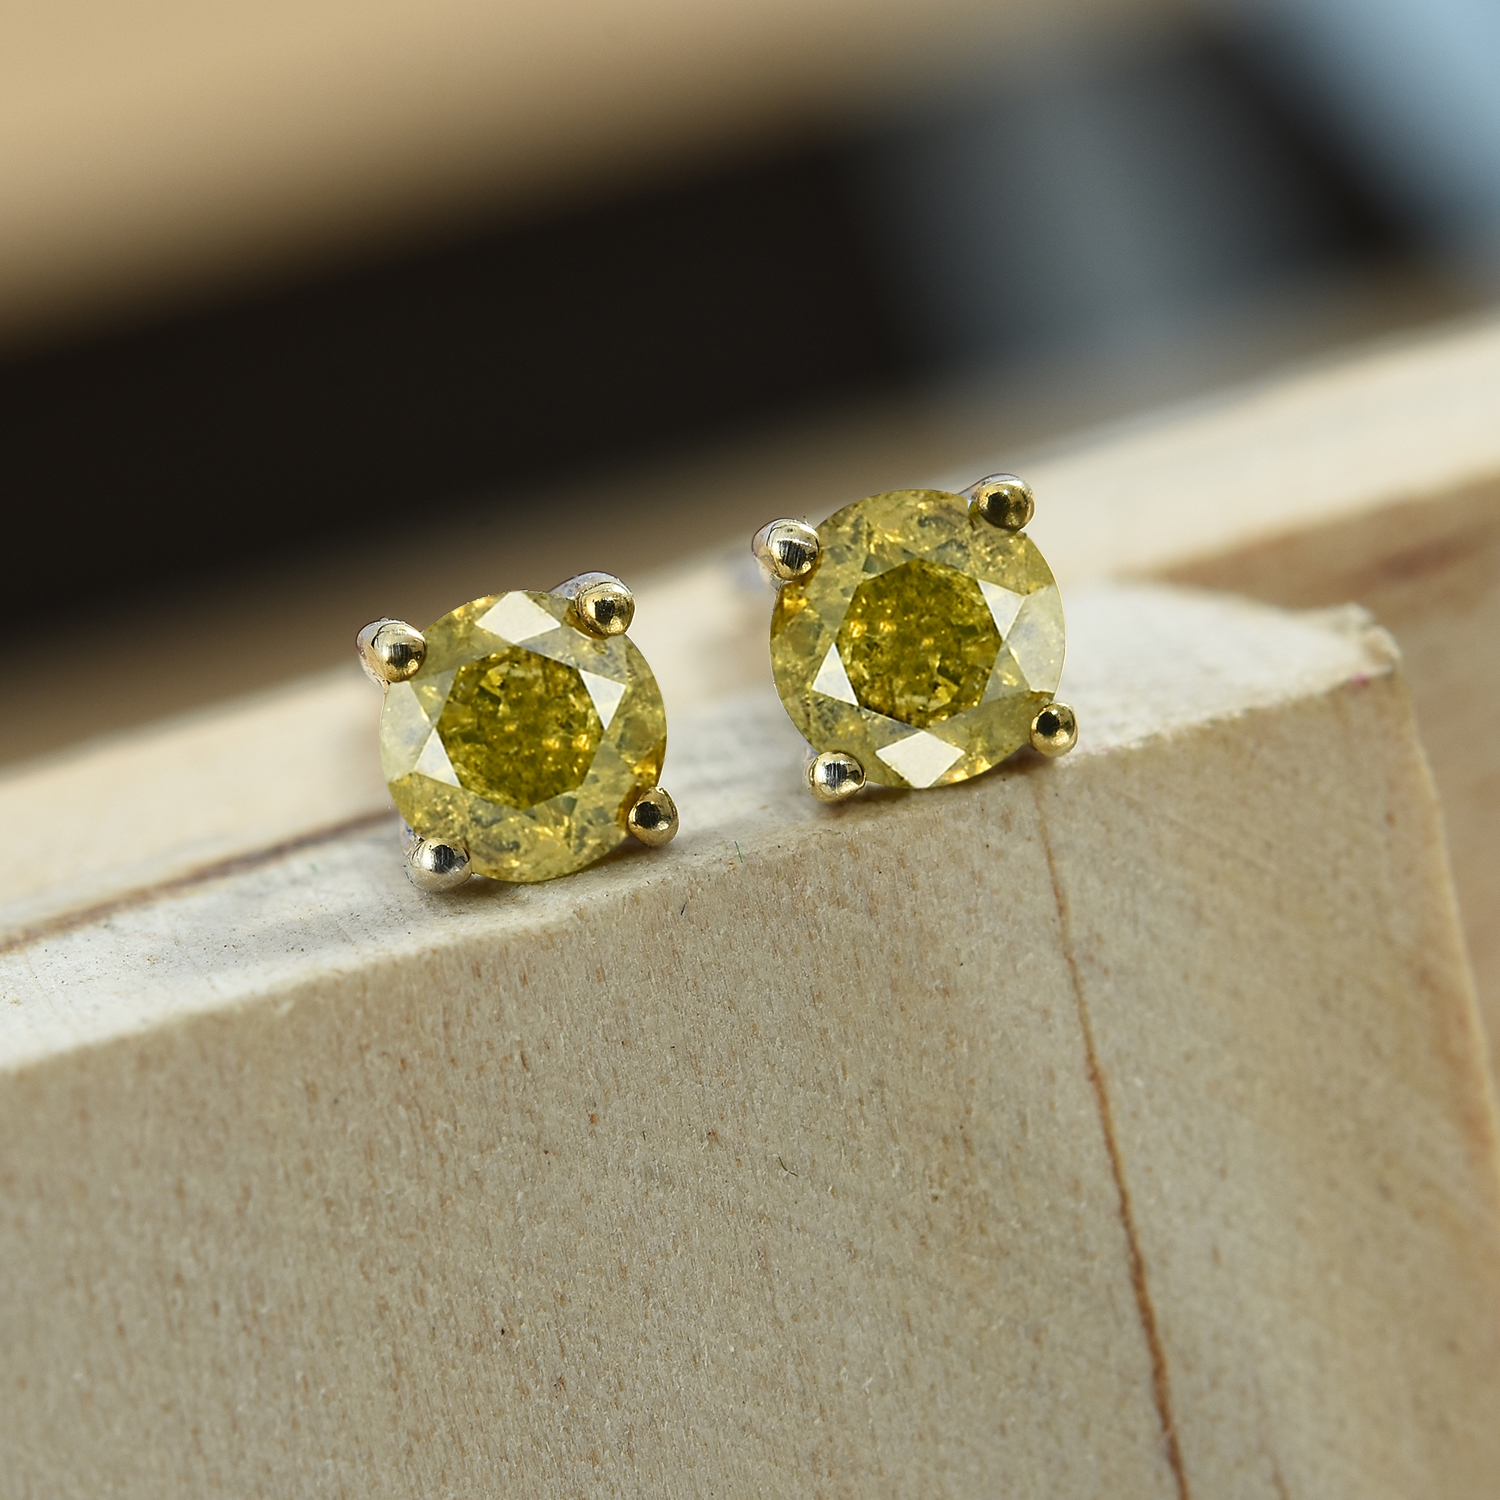 Yellow diamond stud earrings displayed on wooden plinth.